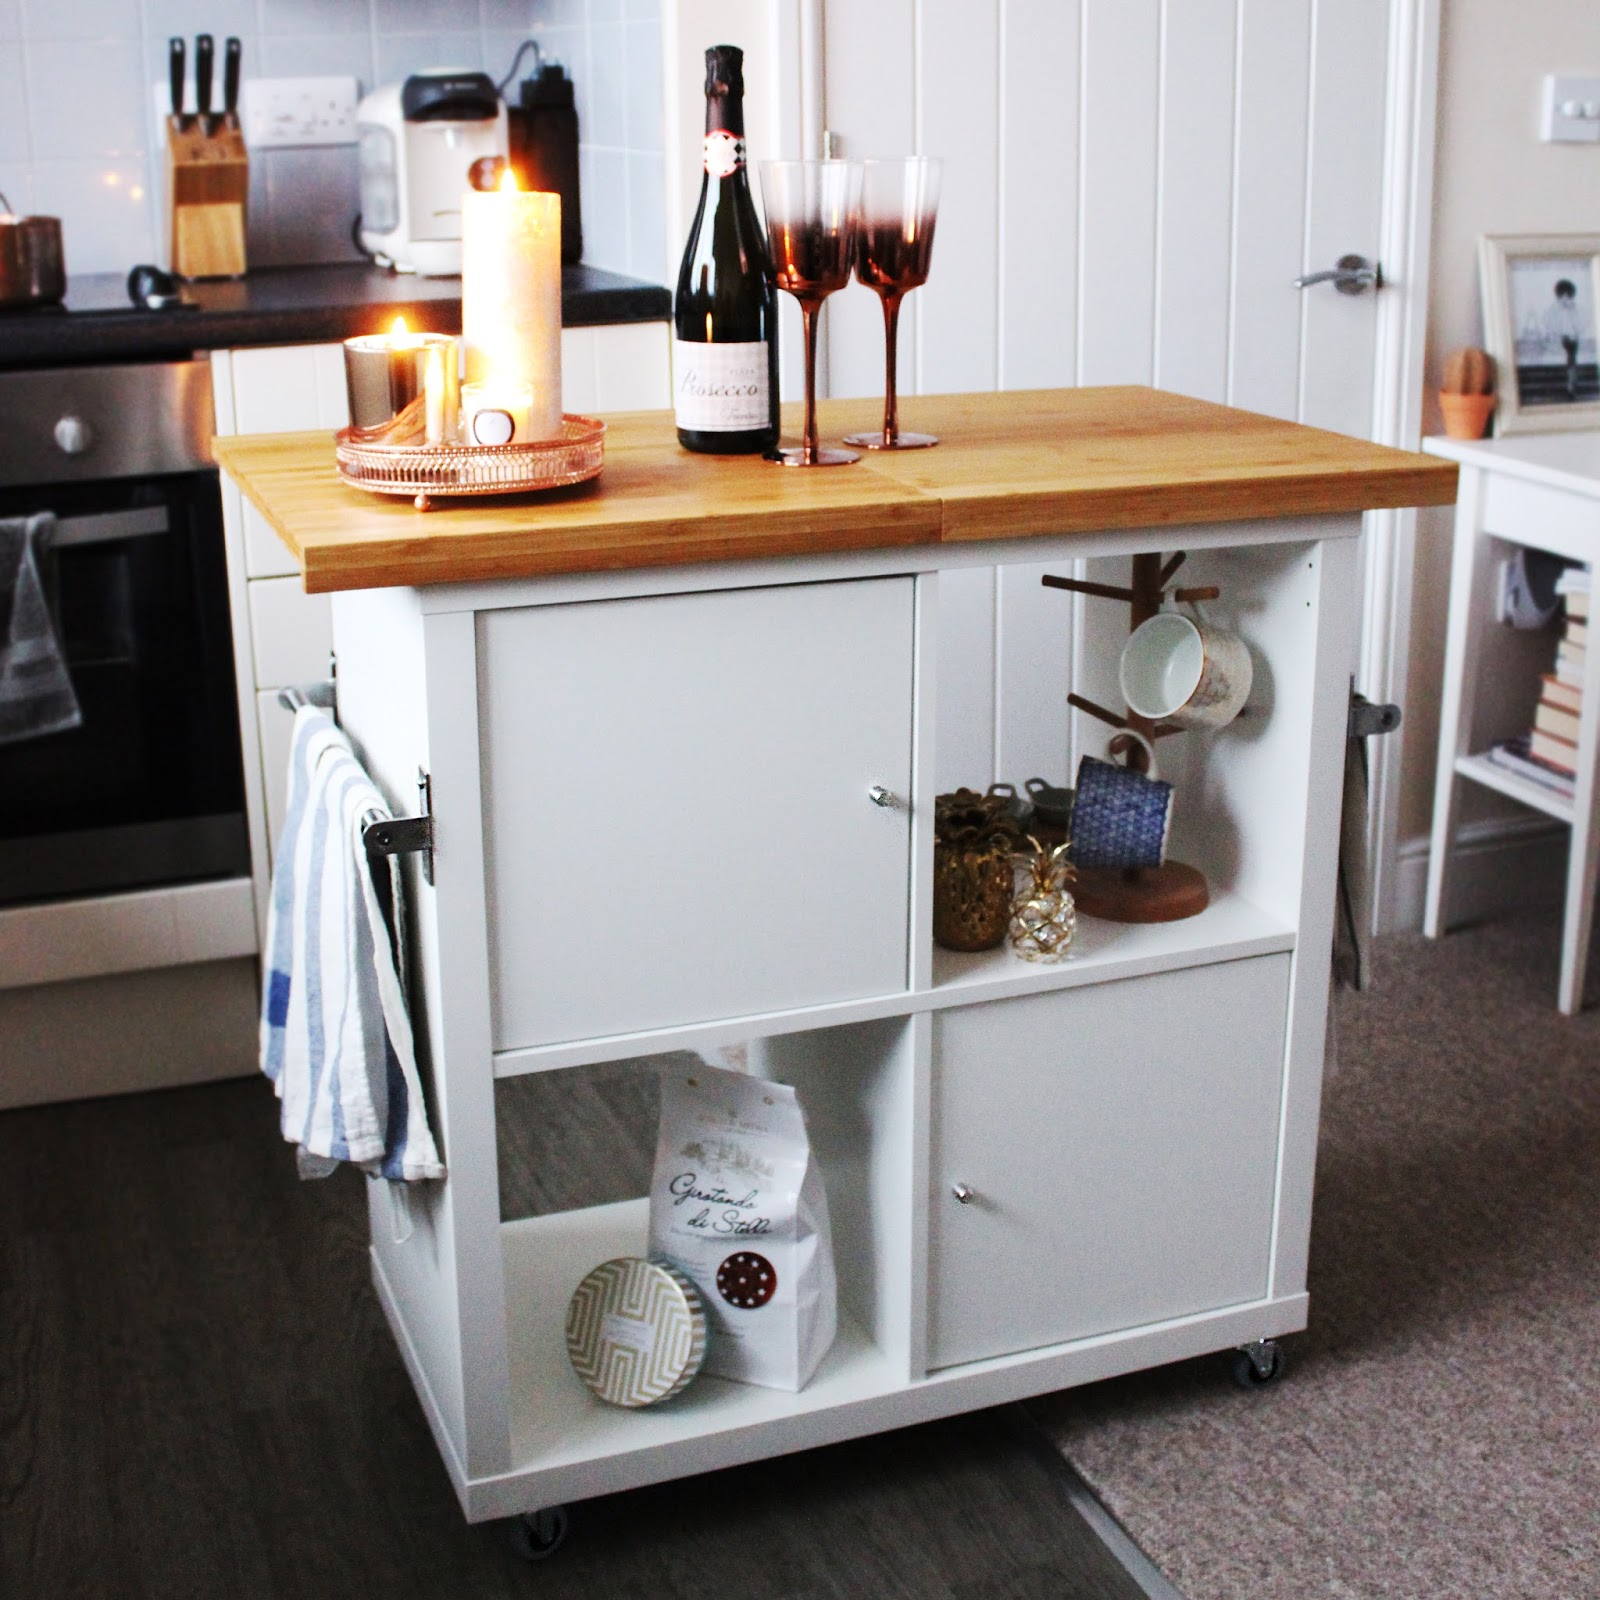 Ikea Kitchen Desk: Ikea Kallax Kitchen Island Hack